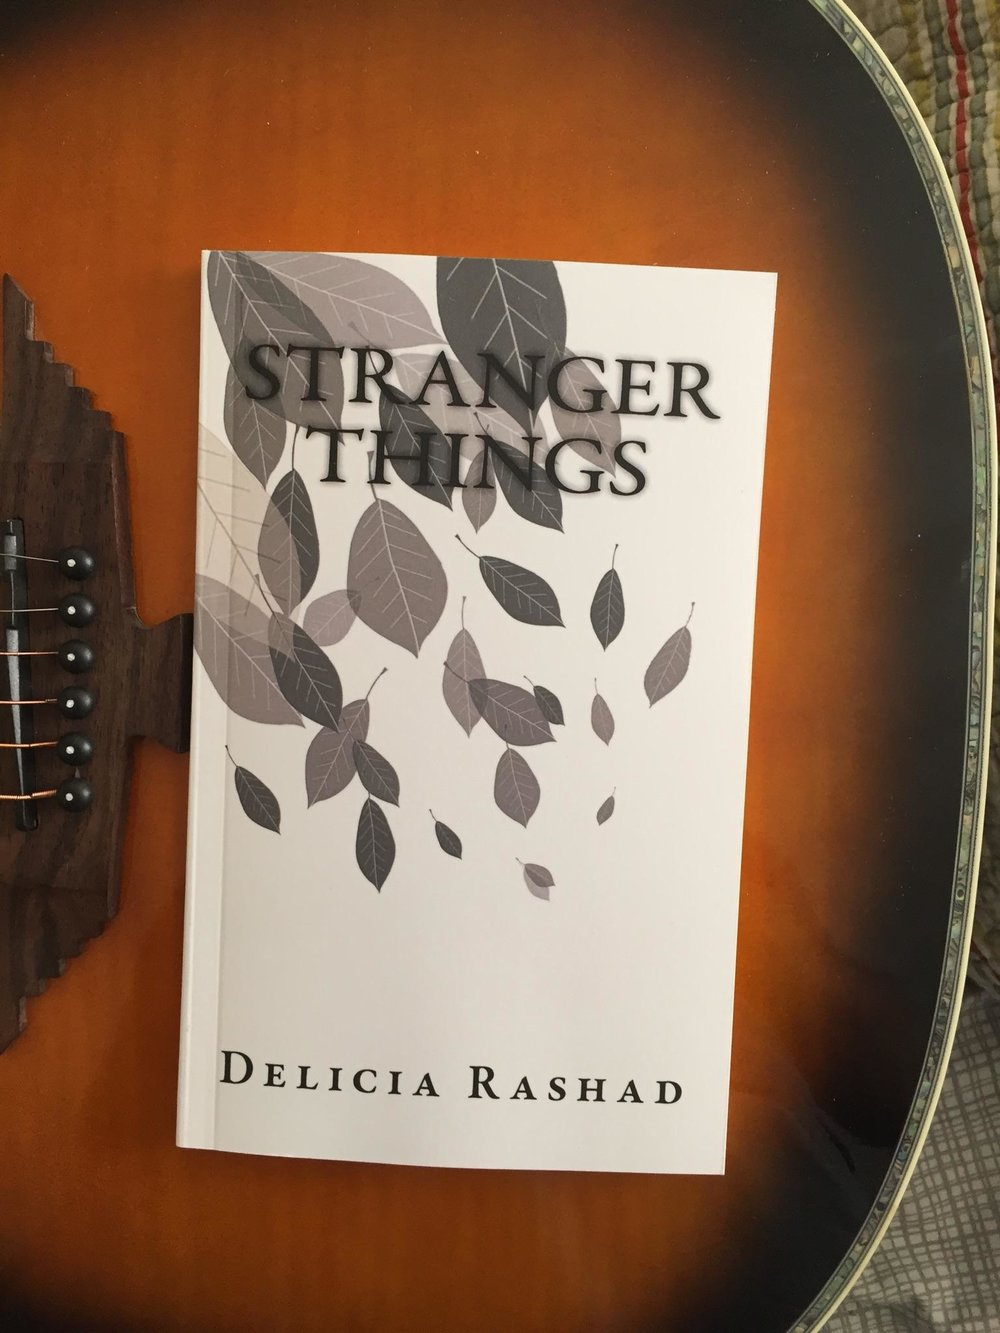 Delicia's first book, Stranger Things